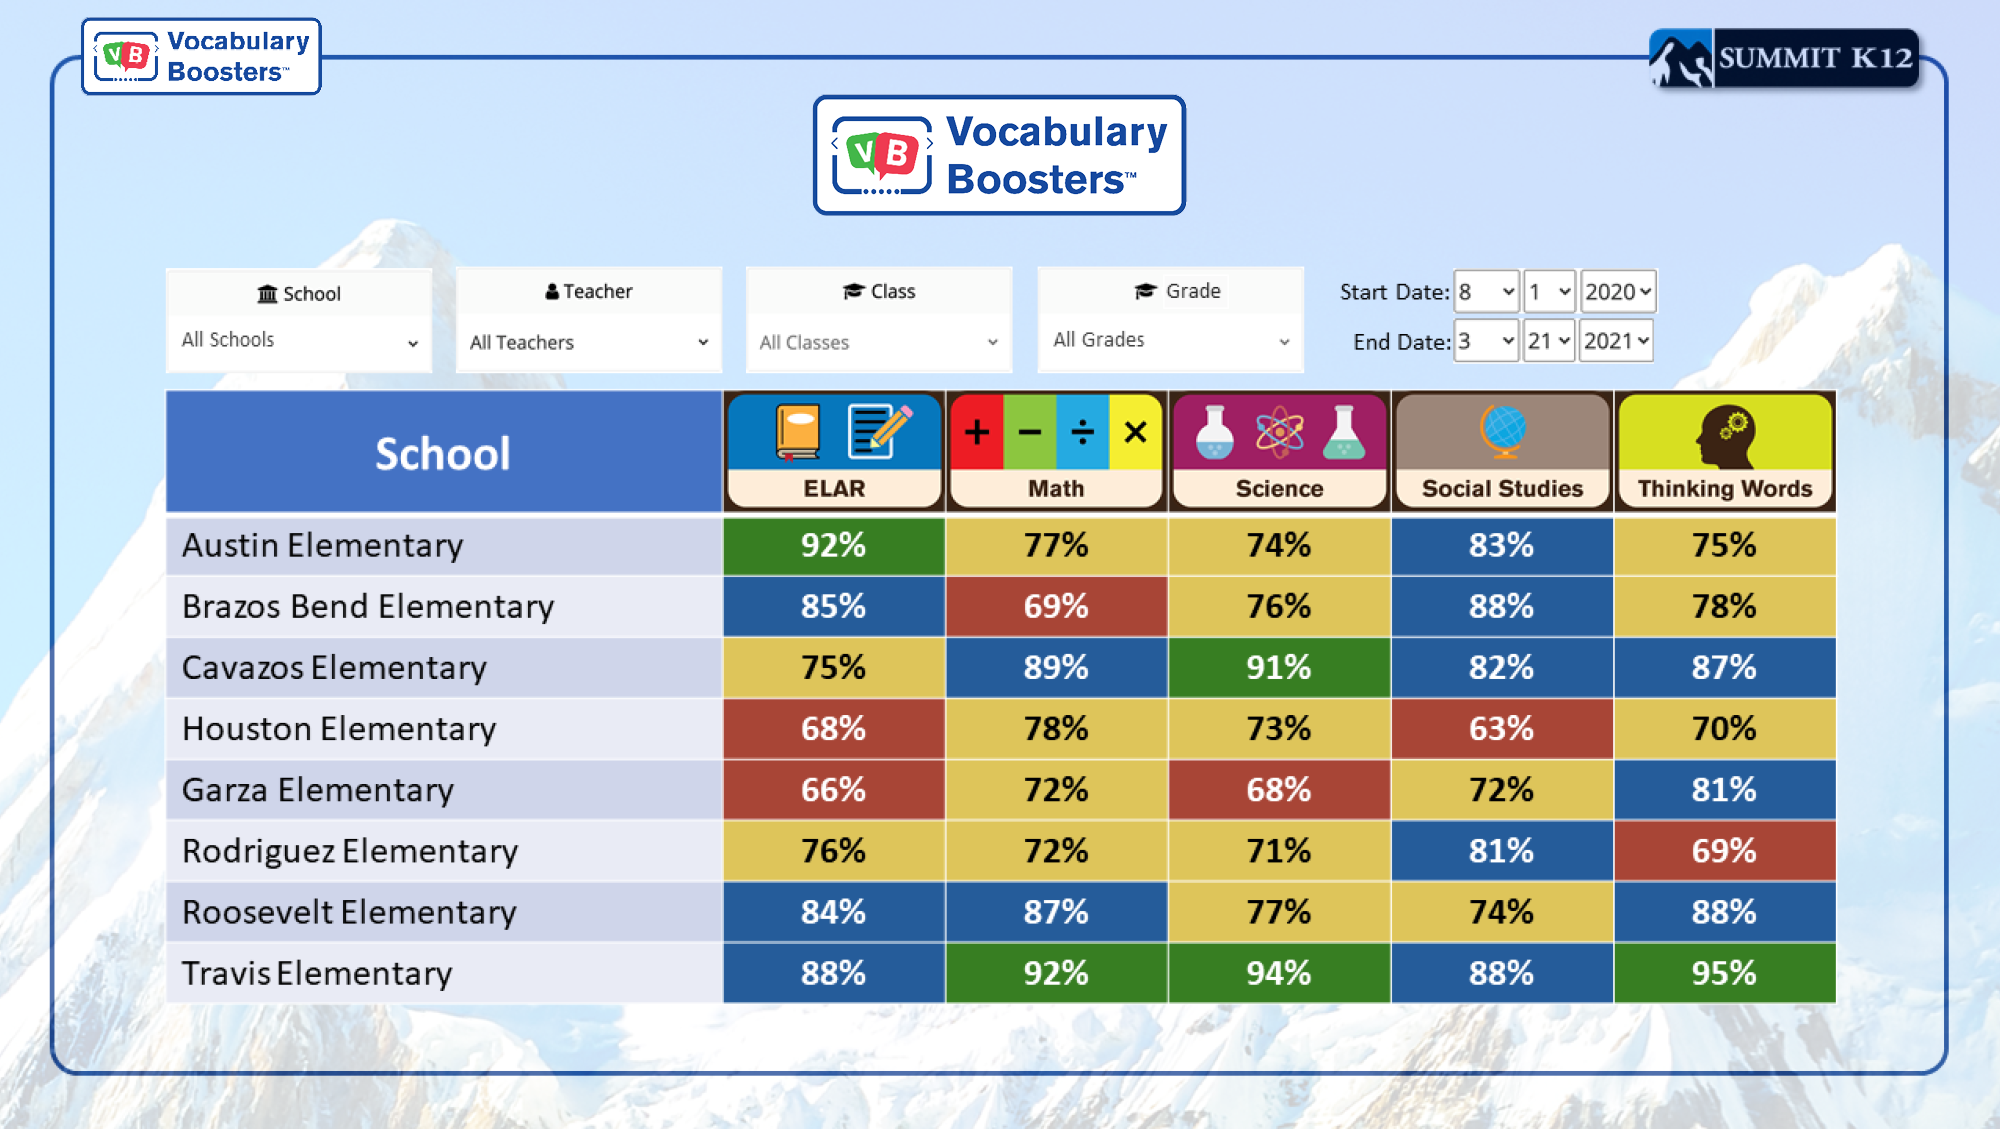 Vocabulary Boosters School Report